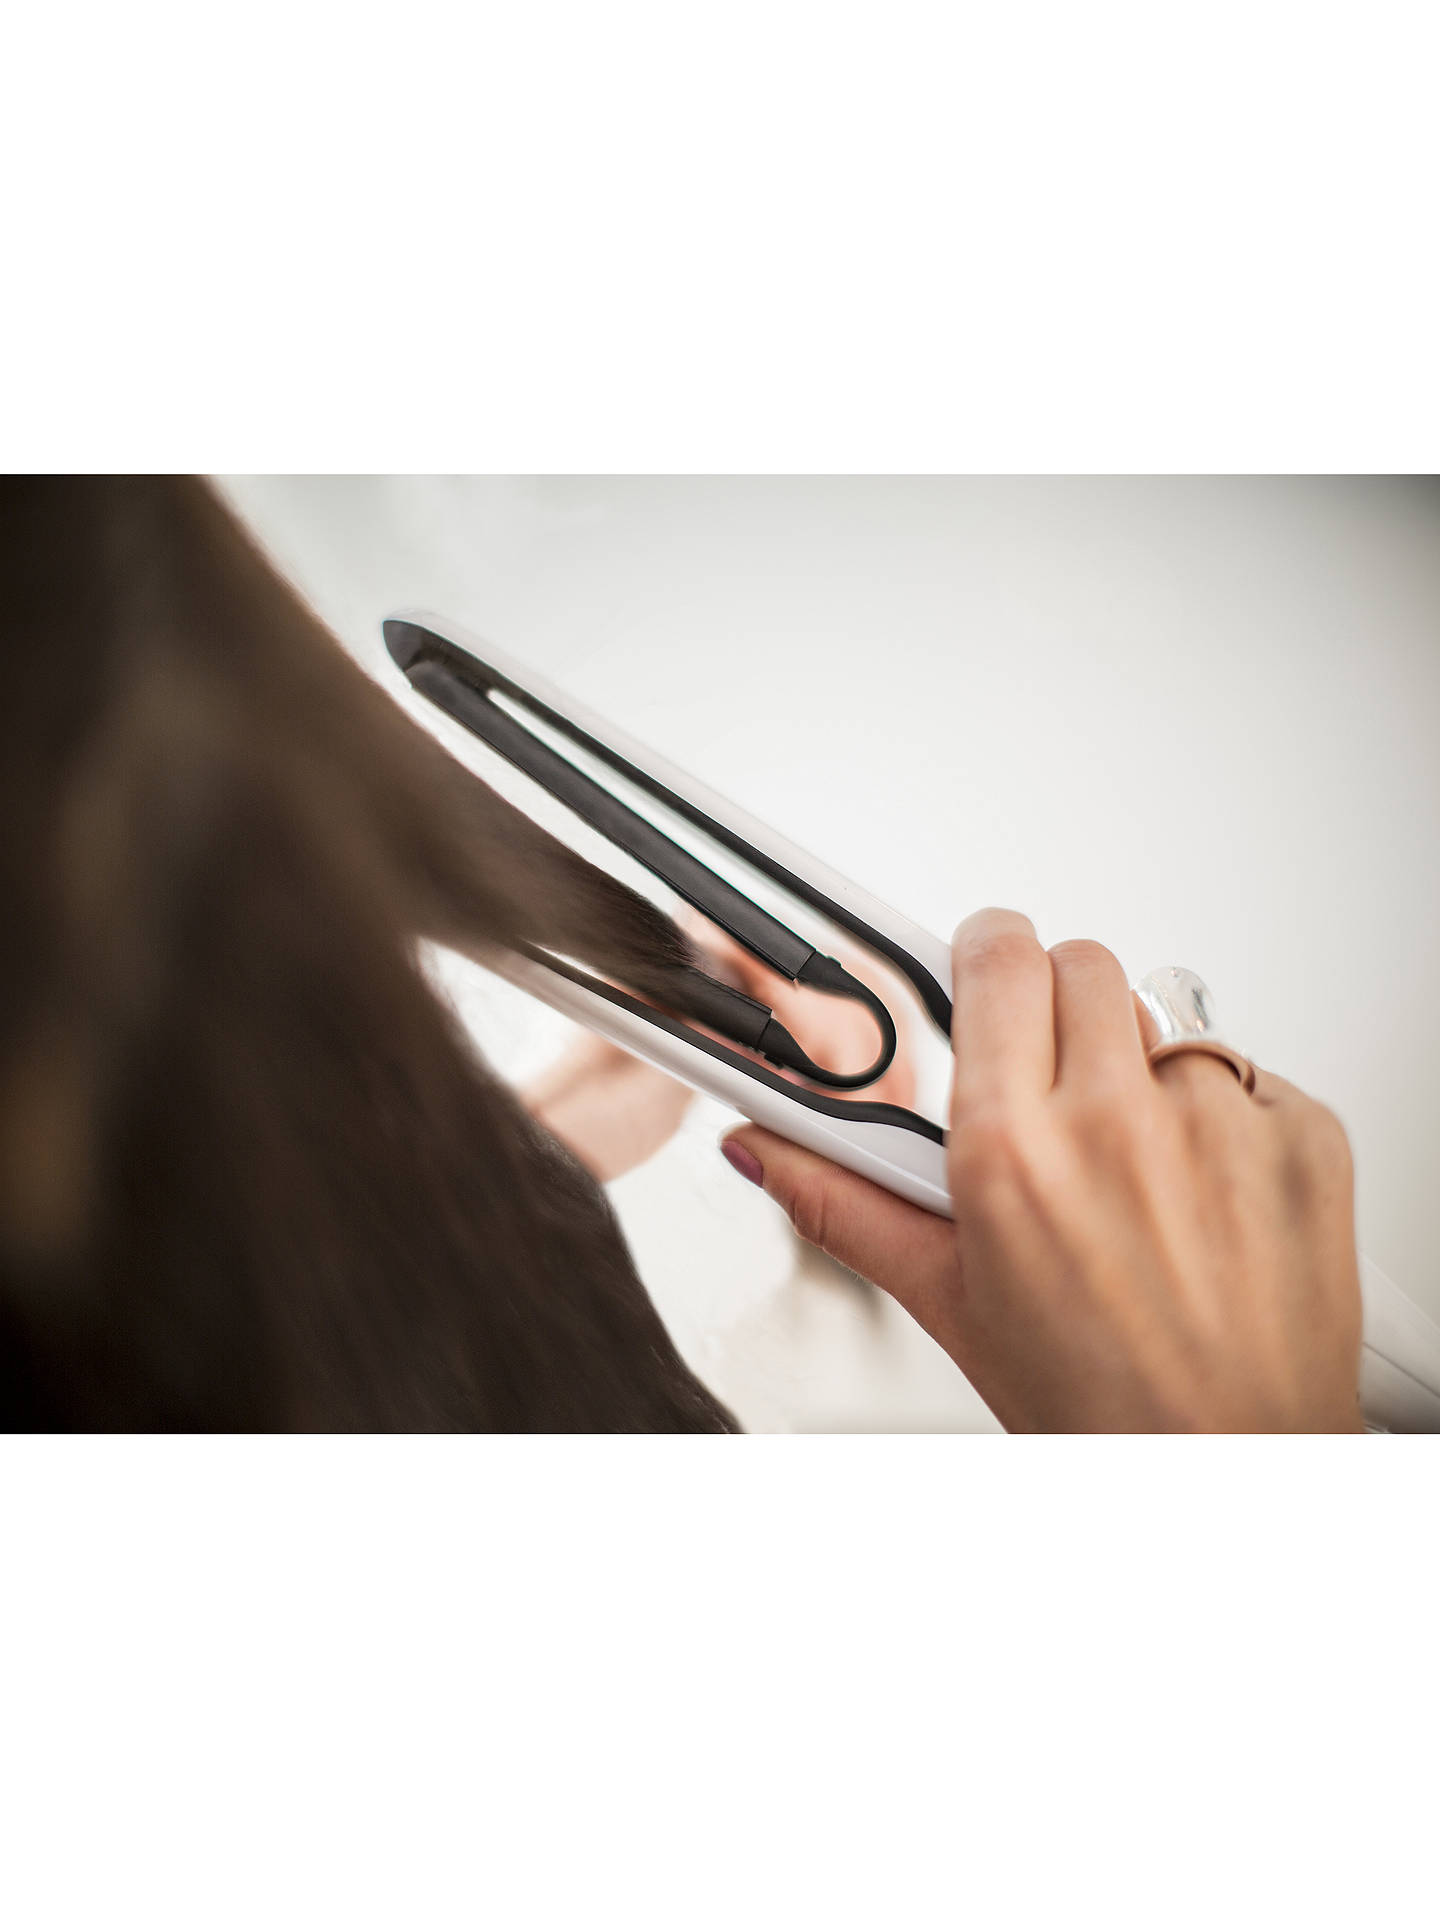 Buy Remington S7412 Air Plates Straightener, White Online at johnlewis.com